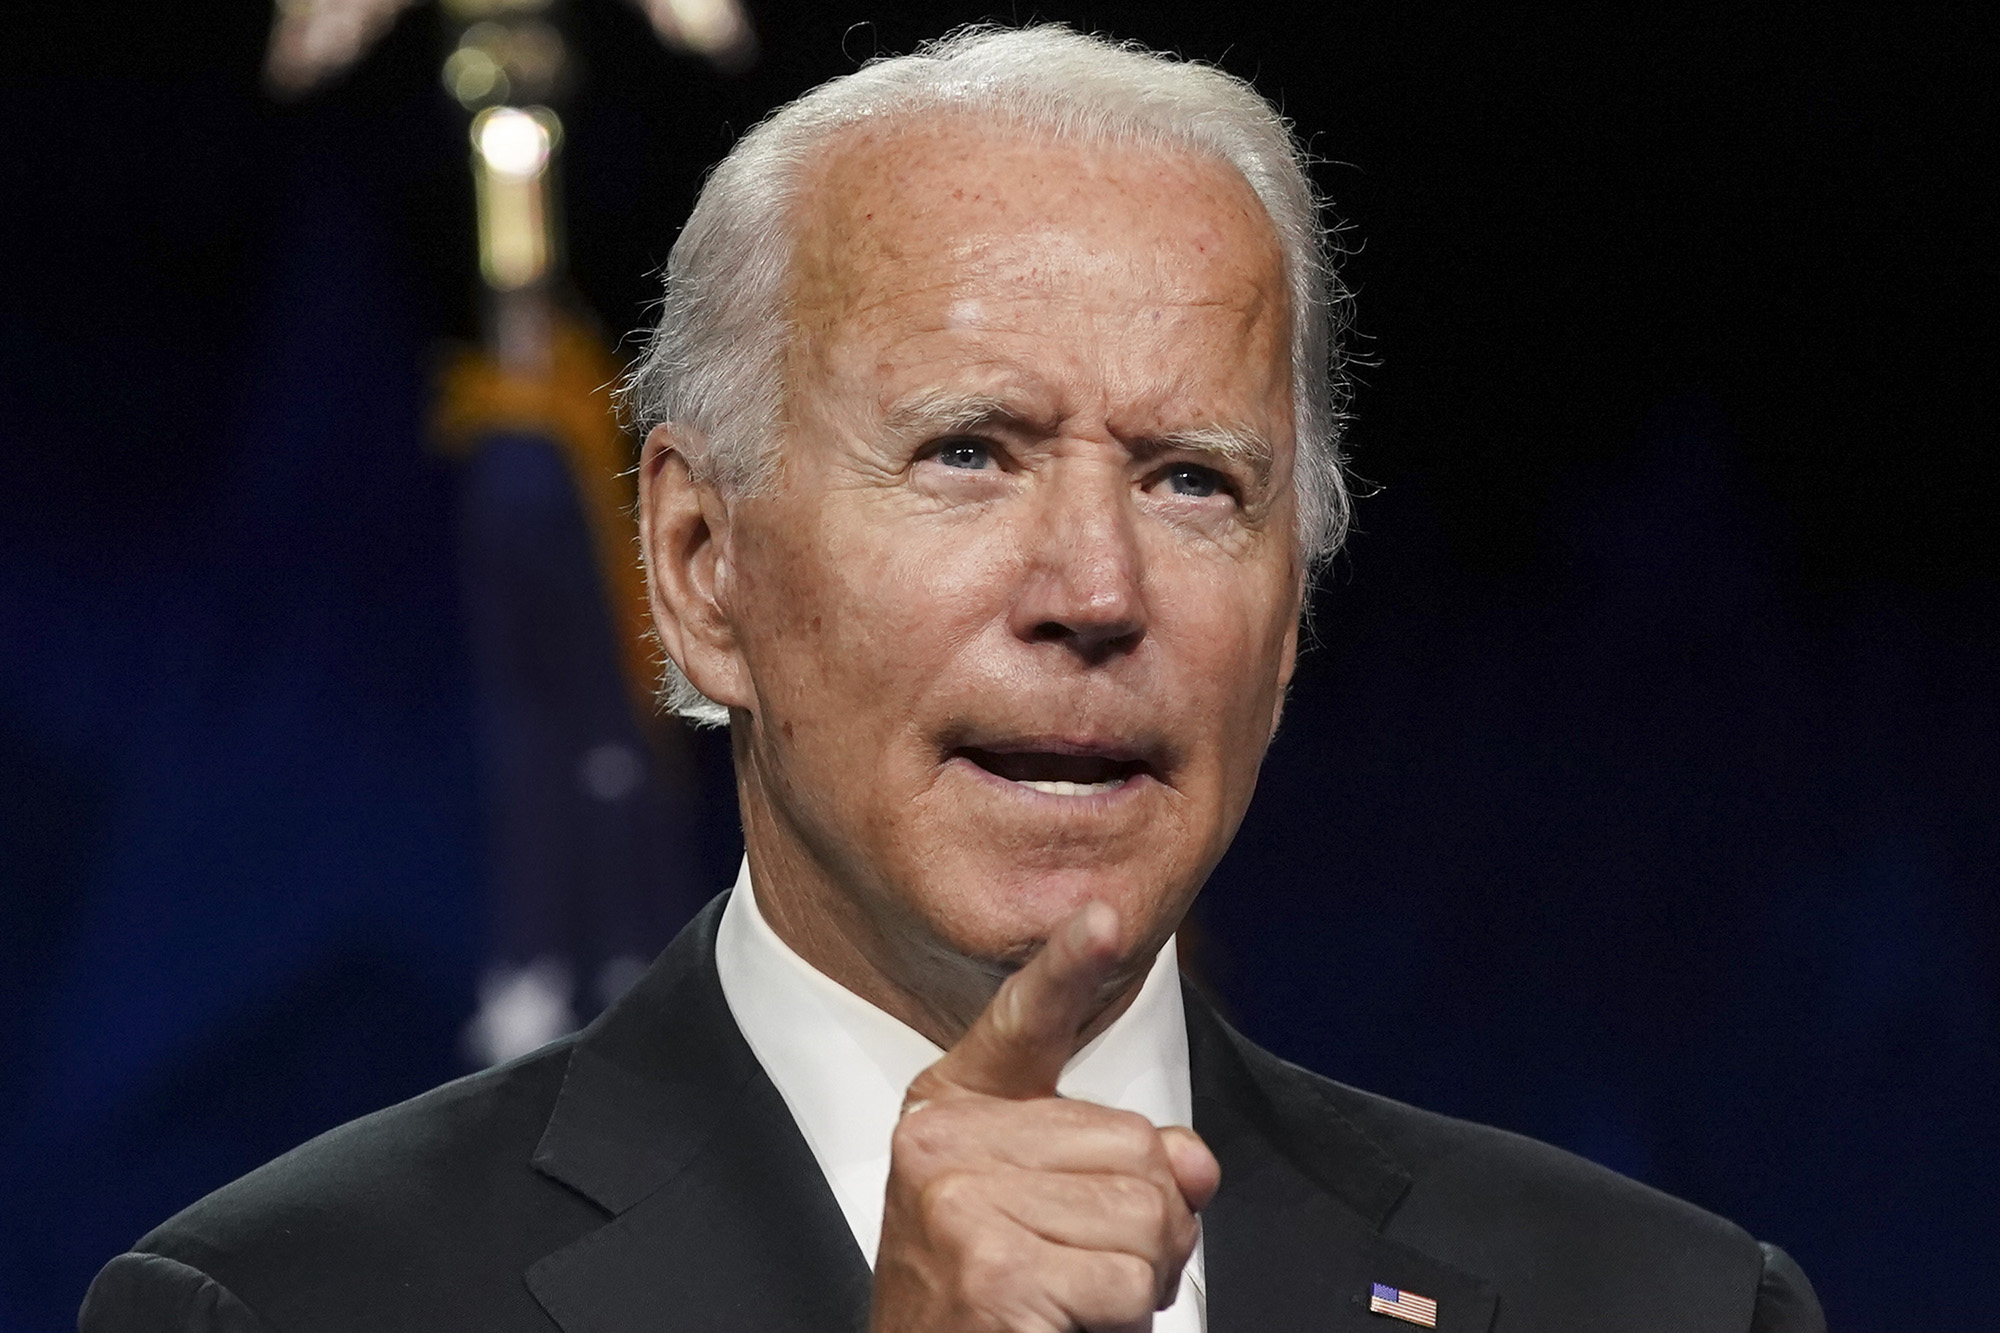 Former Vice President Joe Biden, Democratic presidential nominee, speaks during the Democratic National Convention at the Chase Center in Wilmington, Delaware, U.S., on Thursday, August 20.